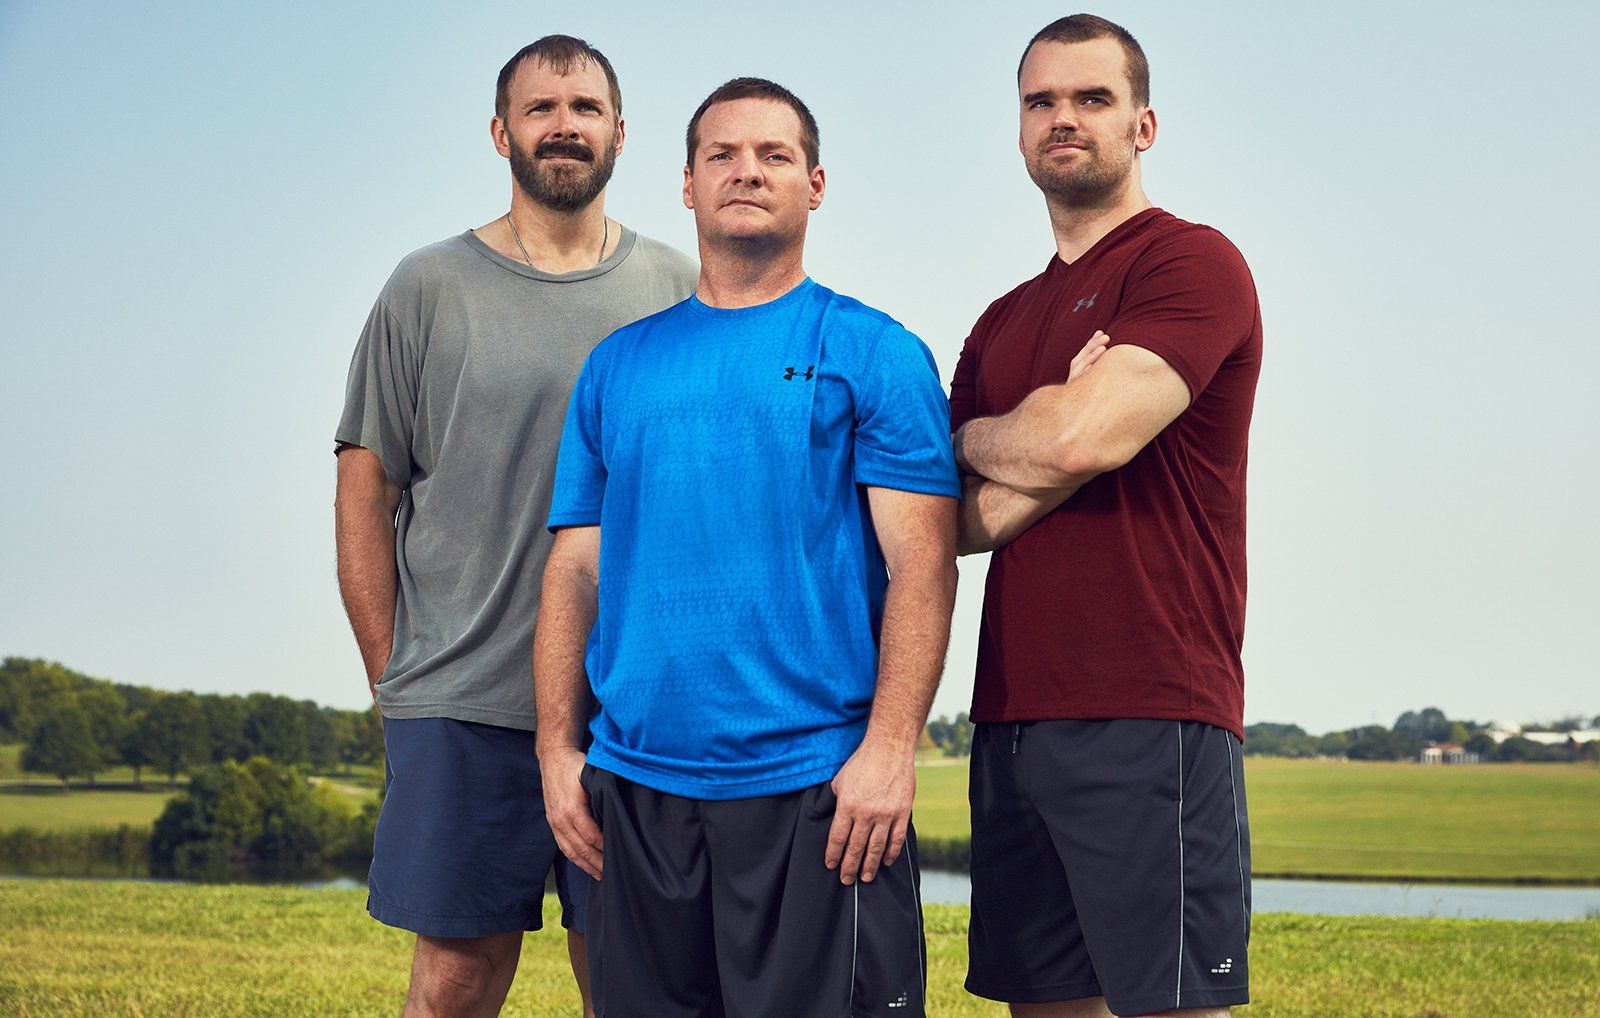 Wanna Lose Those Last 10 Pounds? These 3 Guys Will Show You the Way